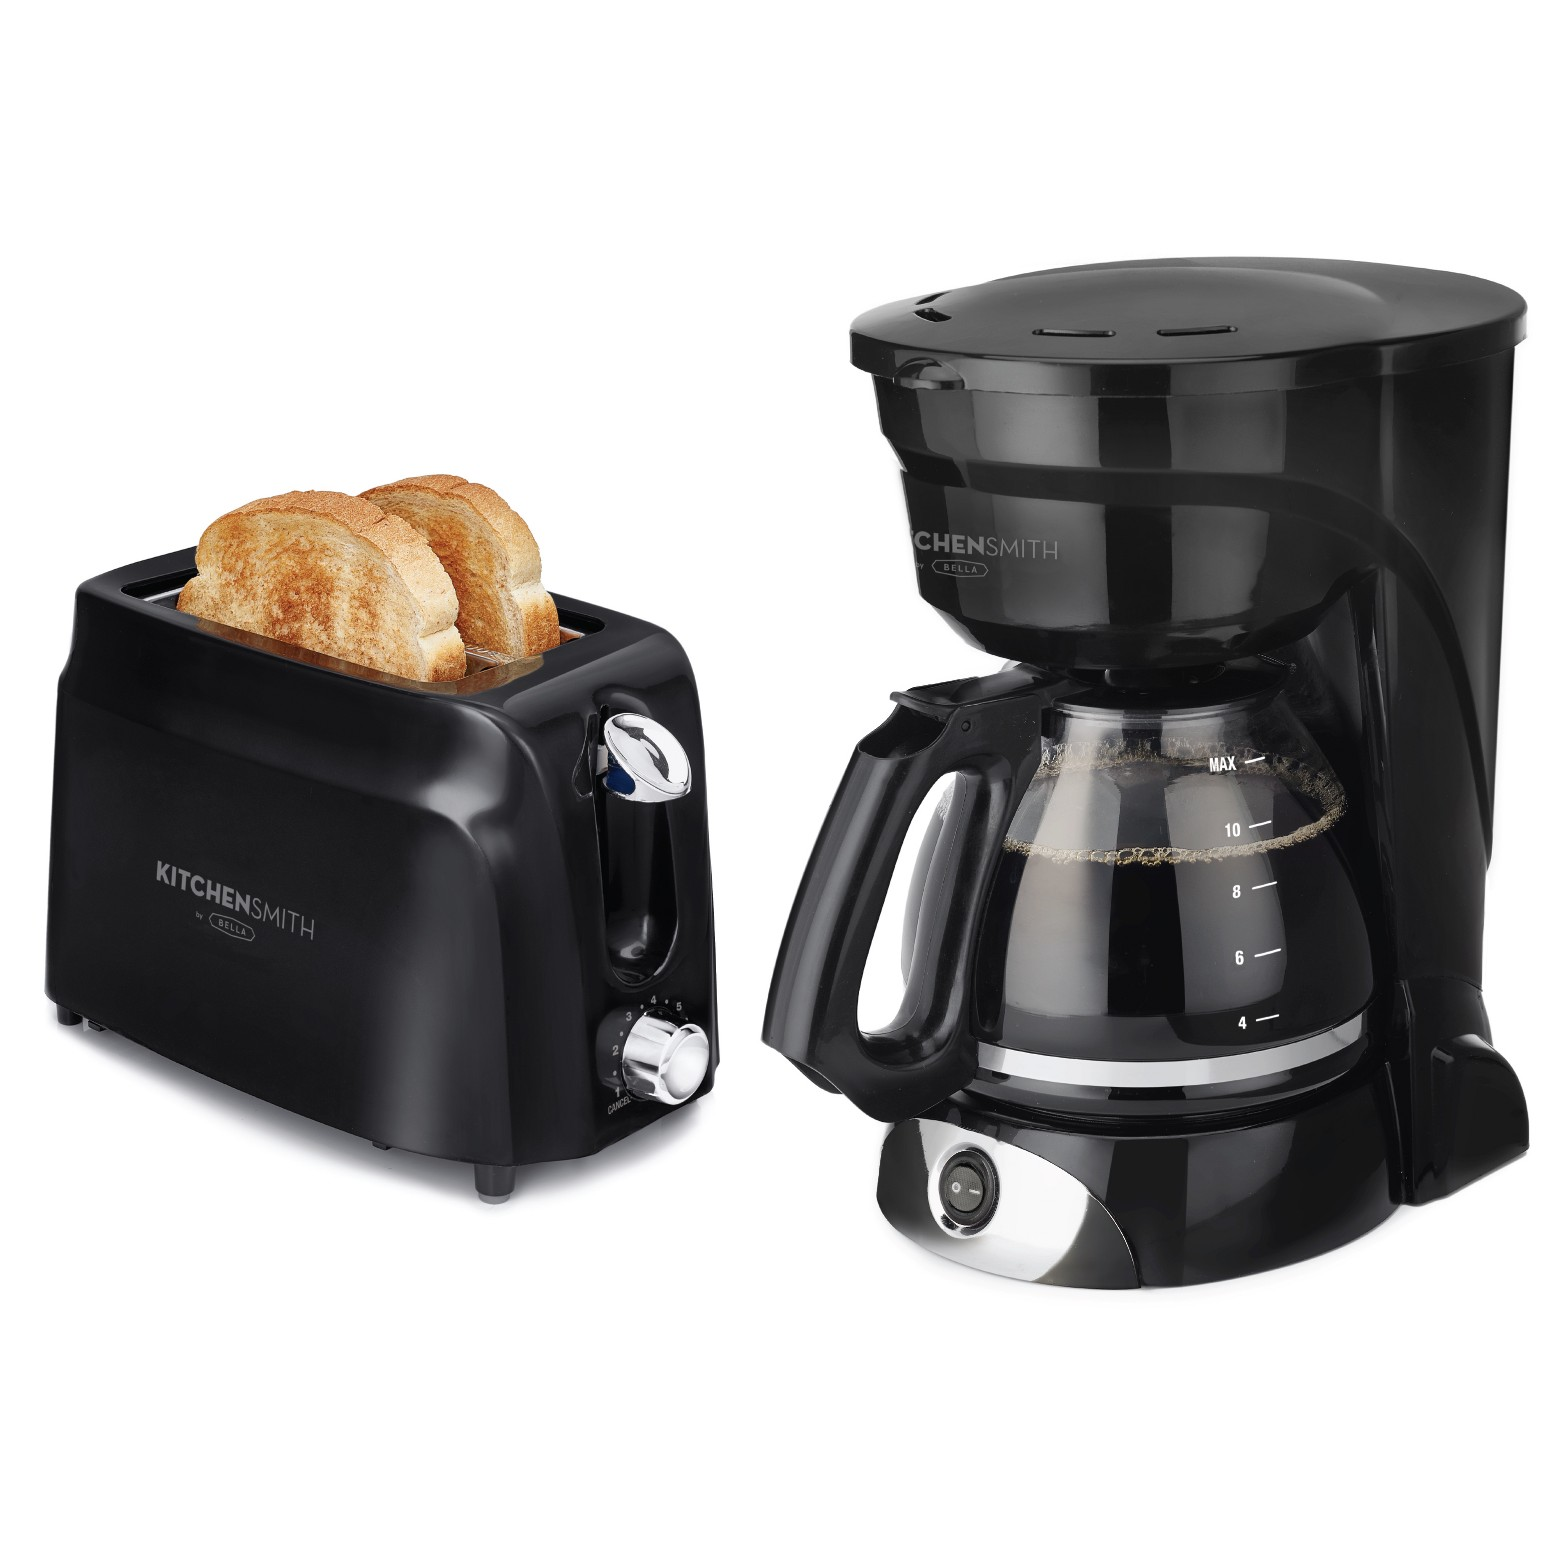 KitchenSmith by Bella Coffee/Toast Bundle, Black	52165641